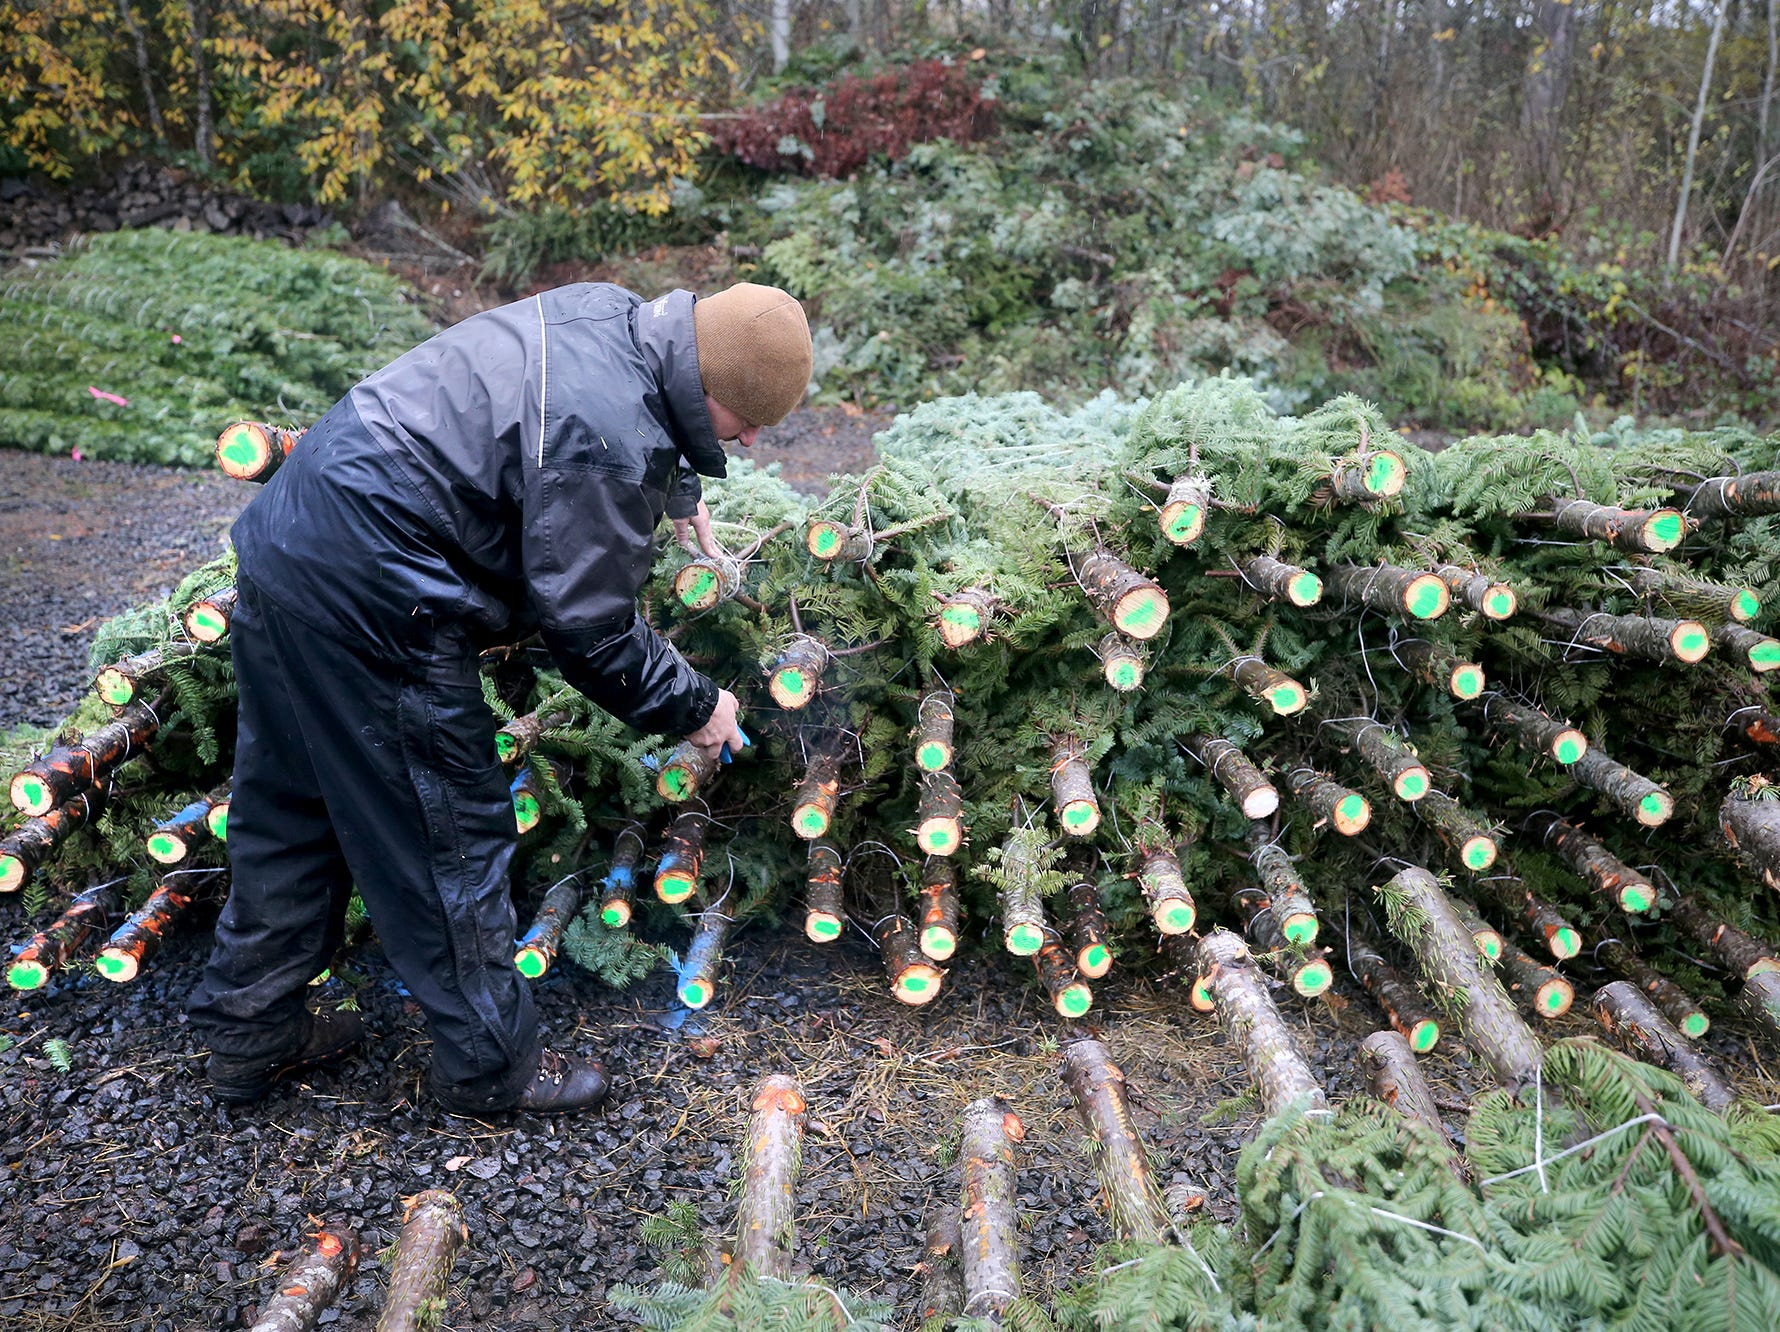 Josh Olmsted uses paint to mark cut Christmas trees on Wednesday, November, 21, 2018 at the tree farm in Poulsbo. The family has run a tree business for 50 years. Friday, November 23, is the opening day for the Poulsbo U-cut tree farm.